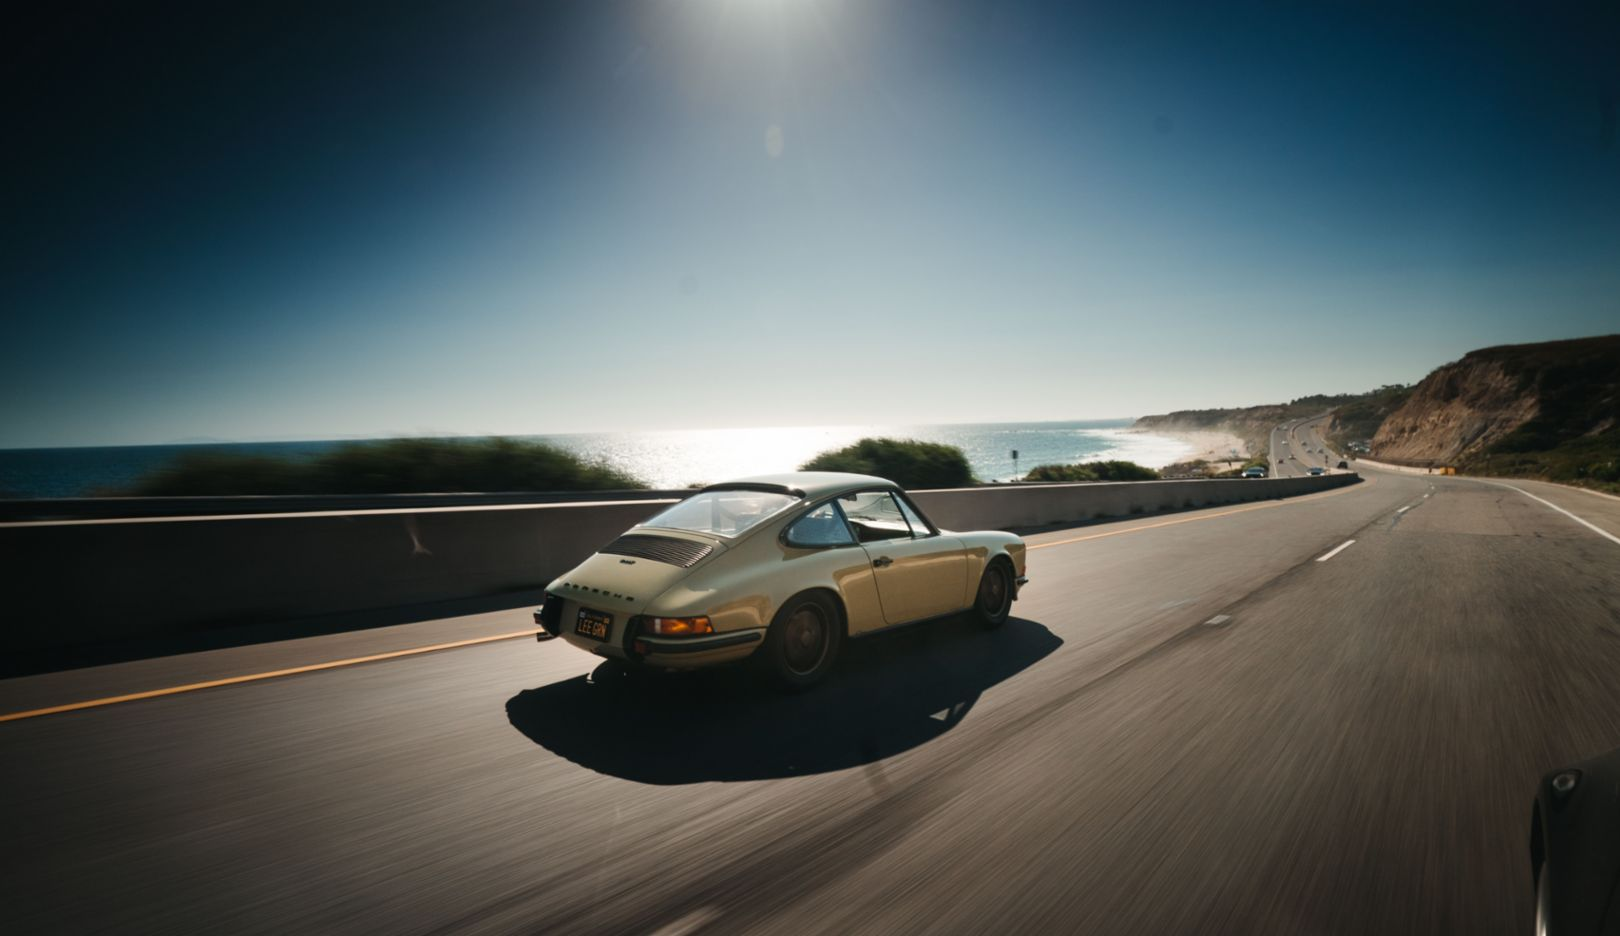 Pacific Coast Highway: engine, wind, and waves. That's all you need for Porsche happiness.